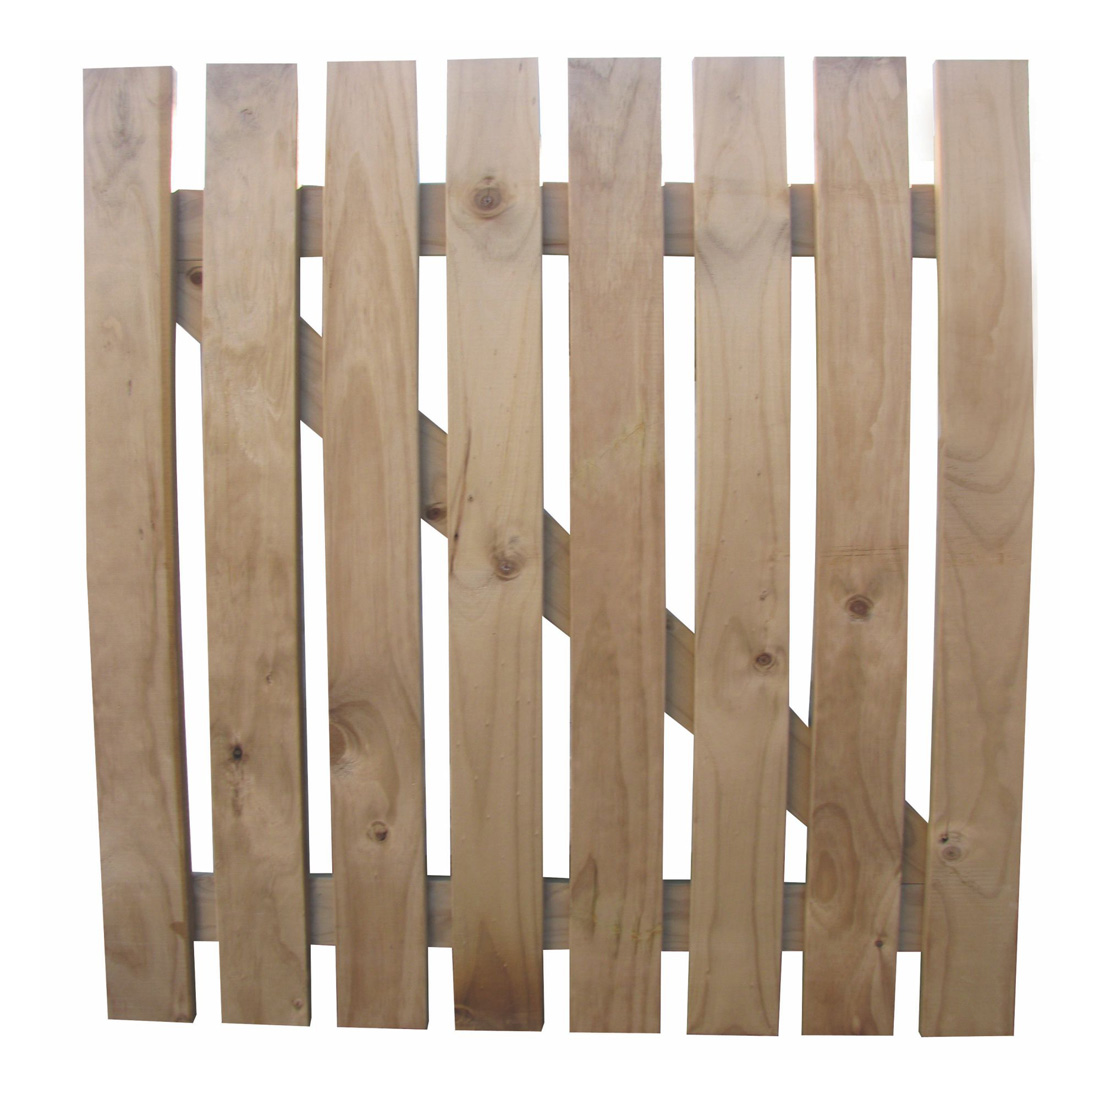 Radiata Square Picket Wooden Gate H3.2 Treated 1200 x 900mm